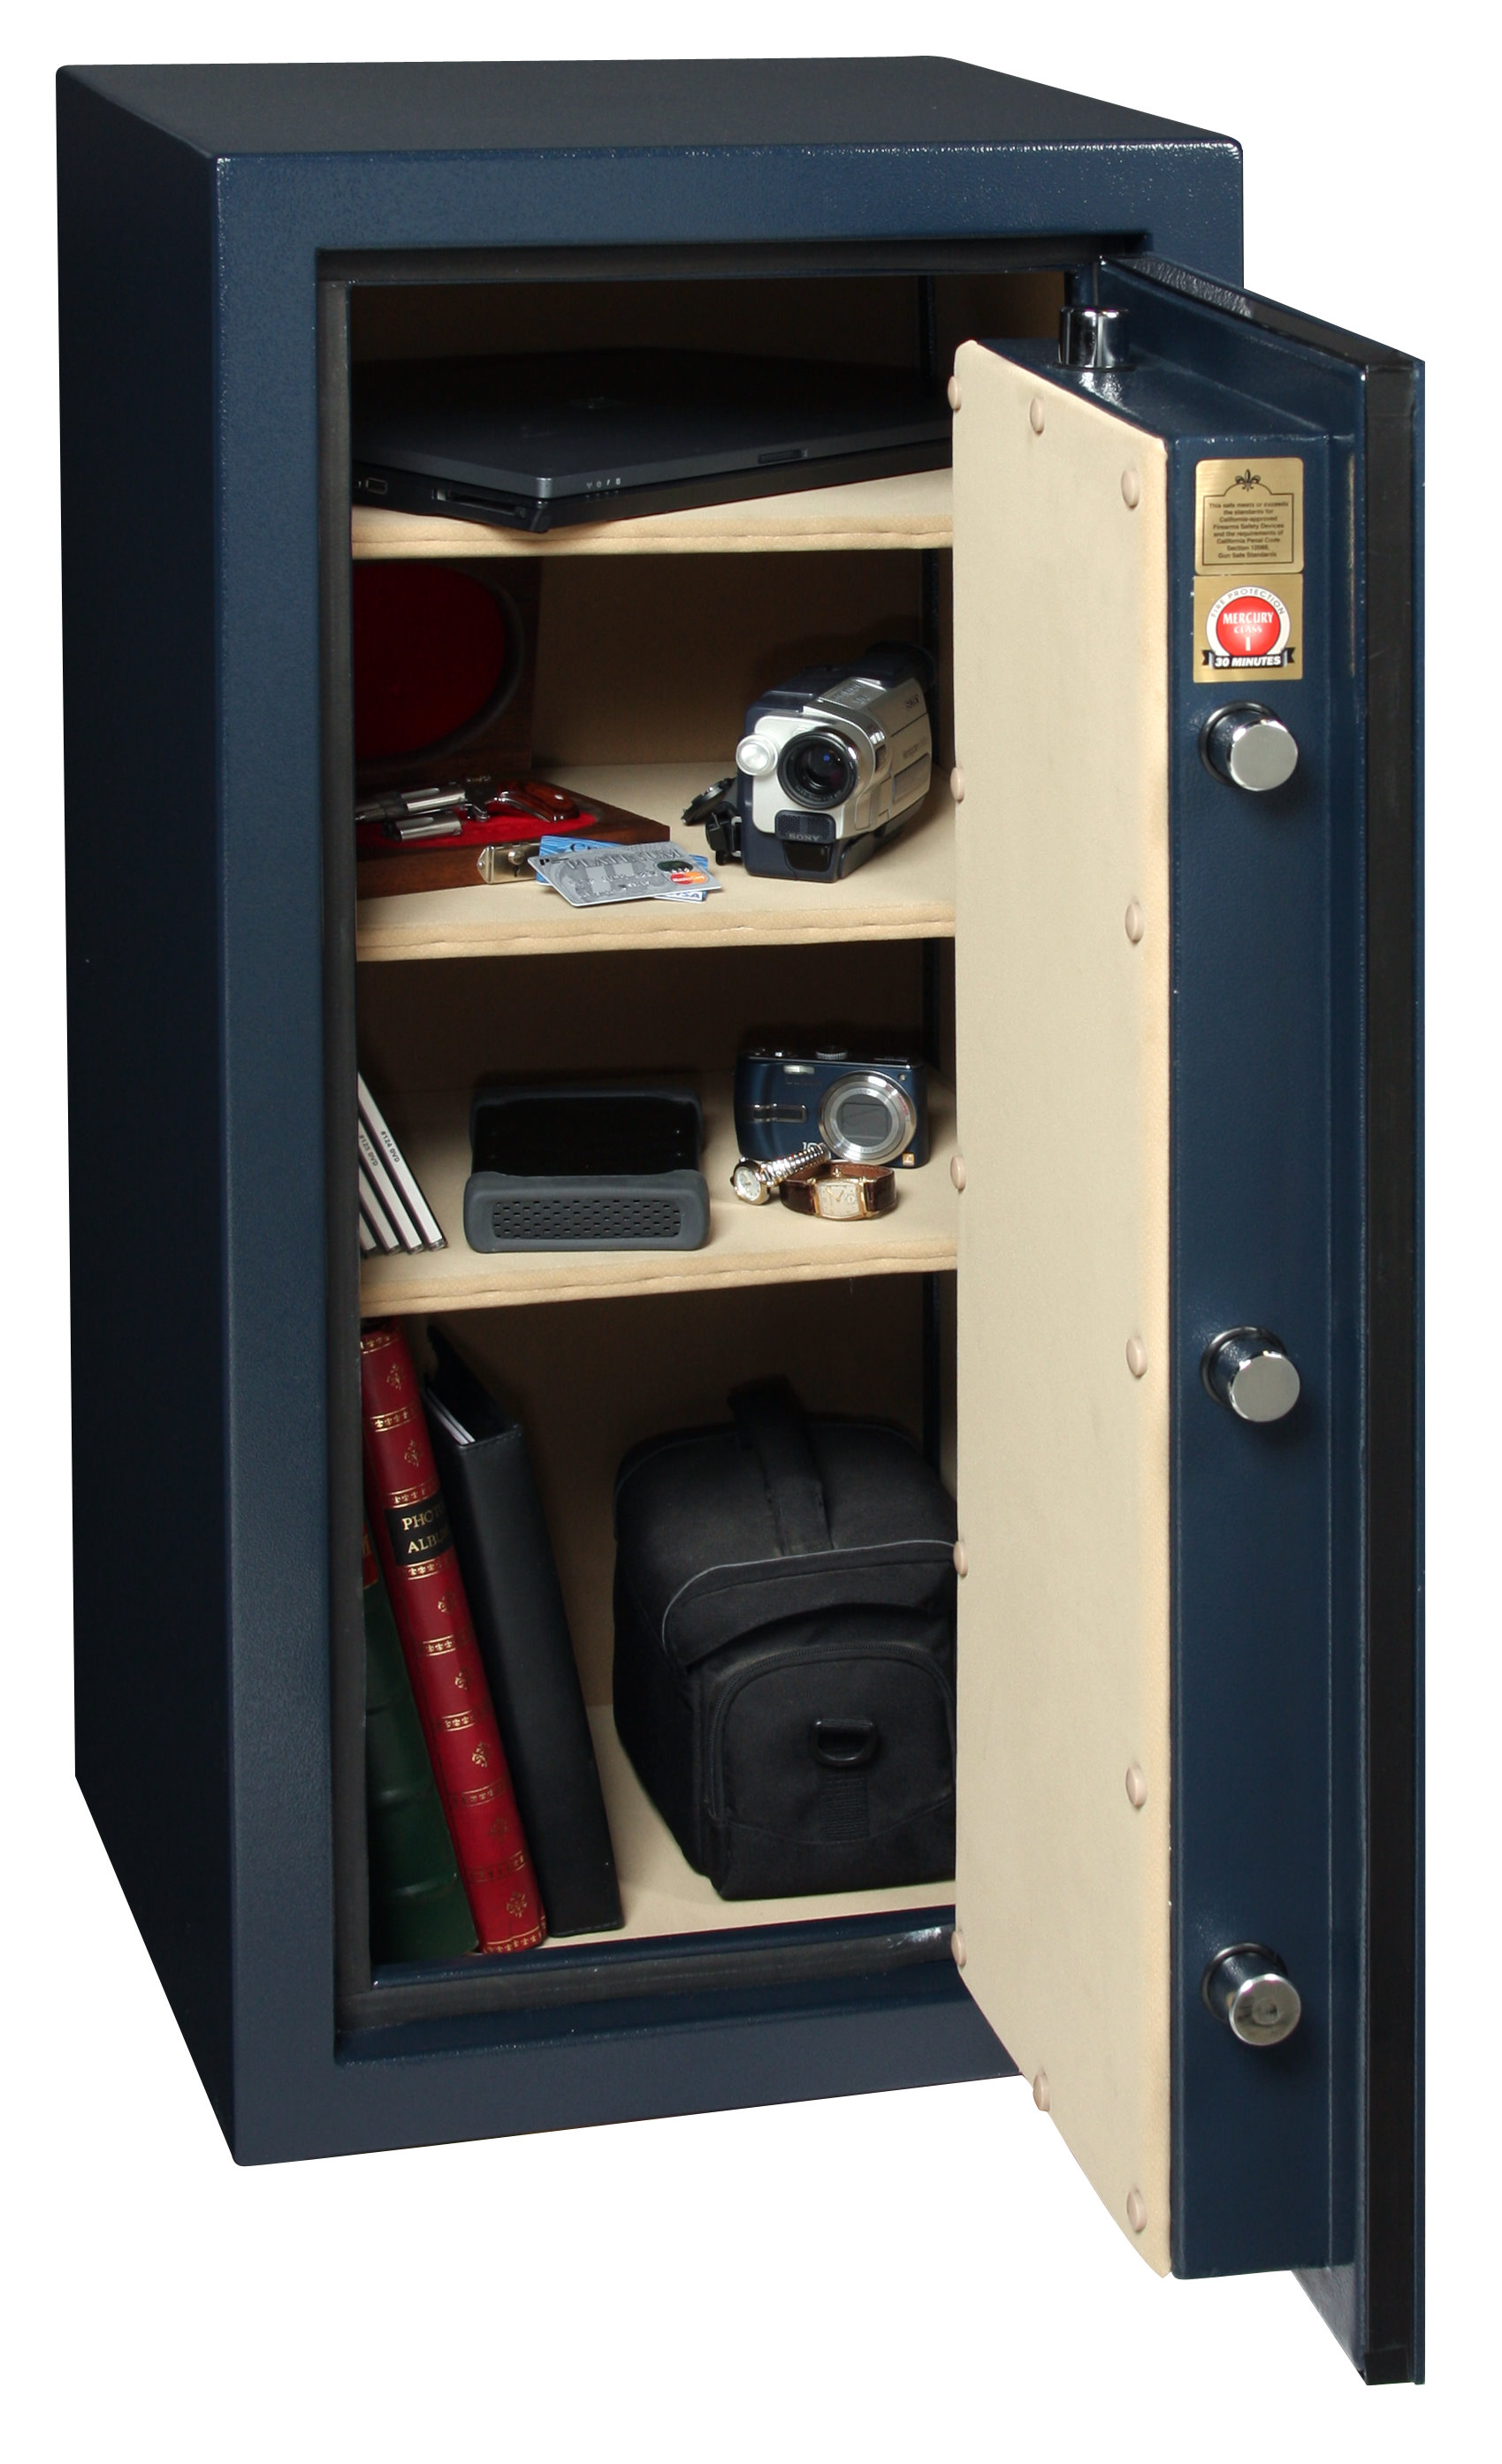 Home Safes safes - reed's locks and access control systems, inc.